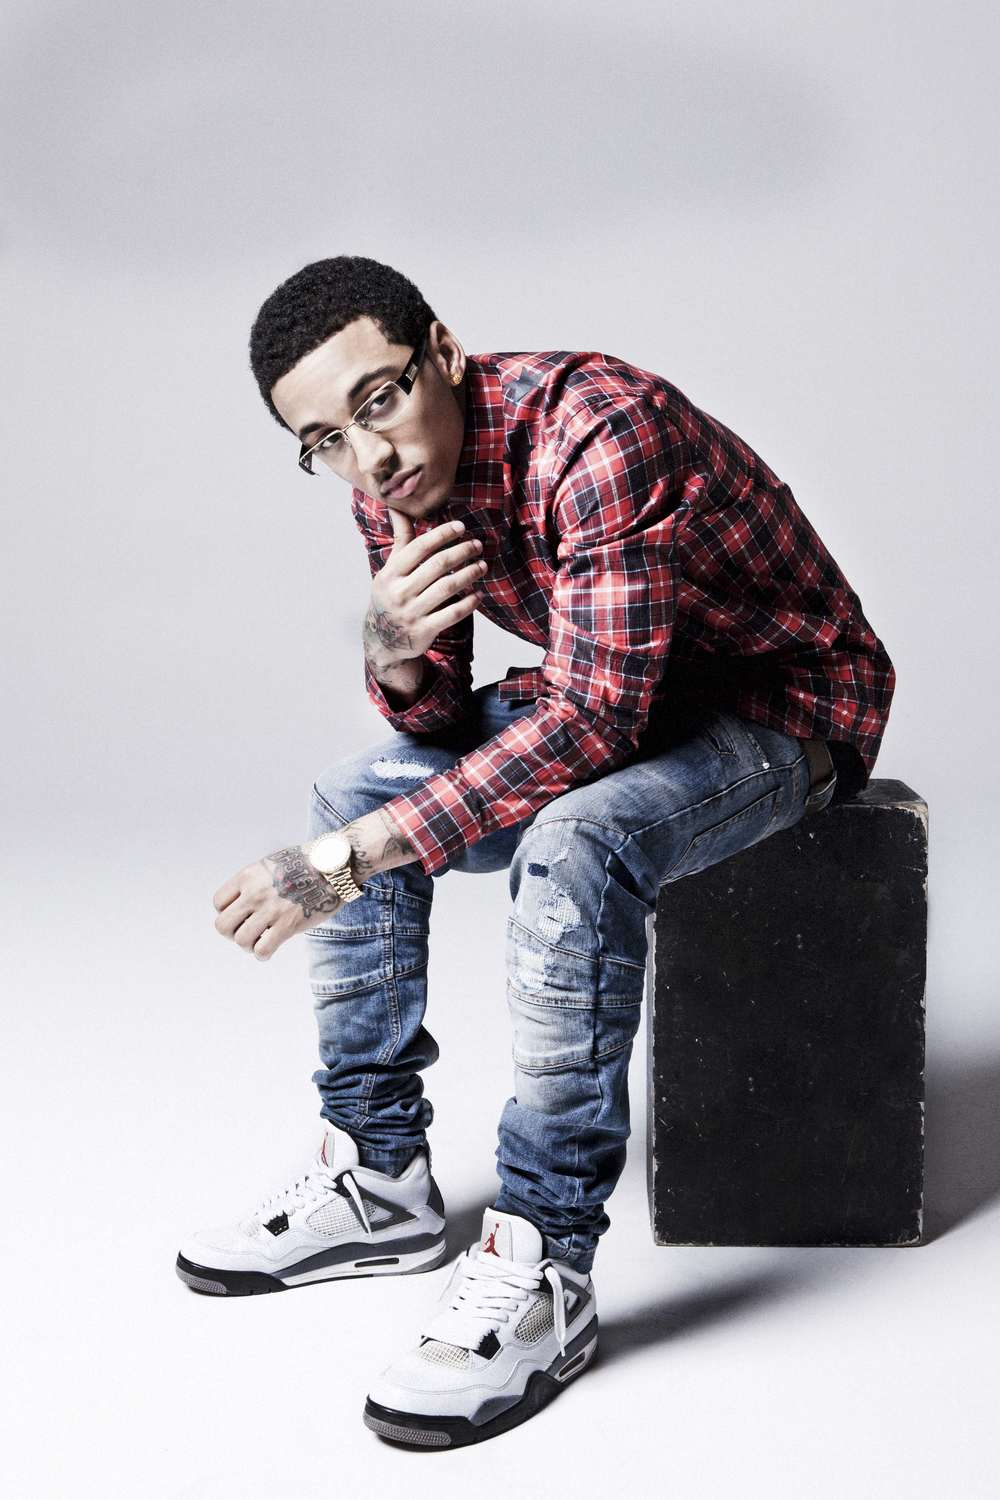 Kirko Bangz wearing plaid and looking hot.jpg